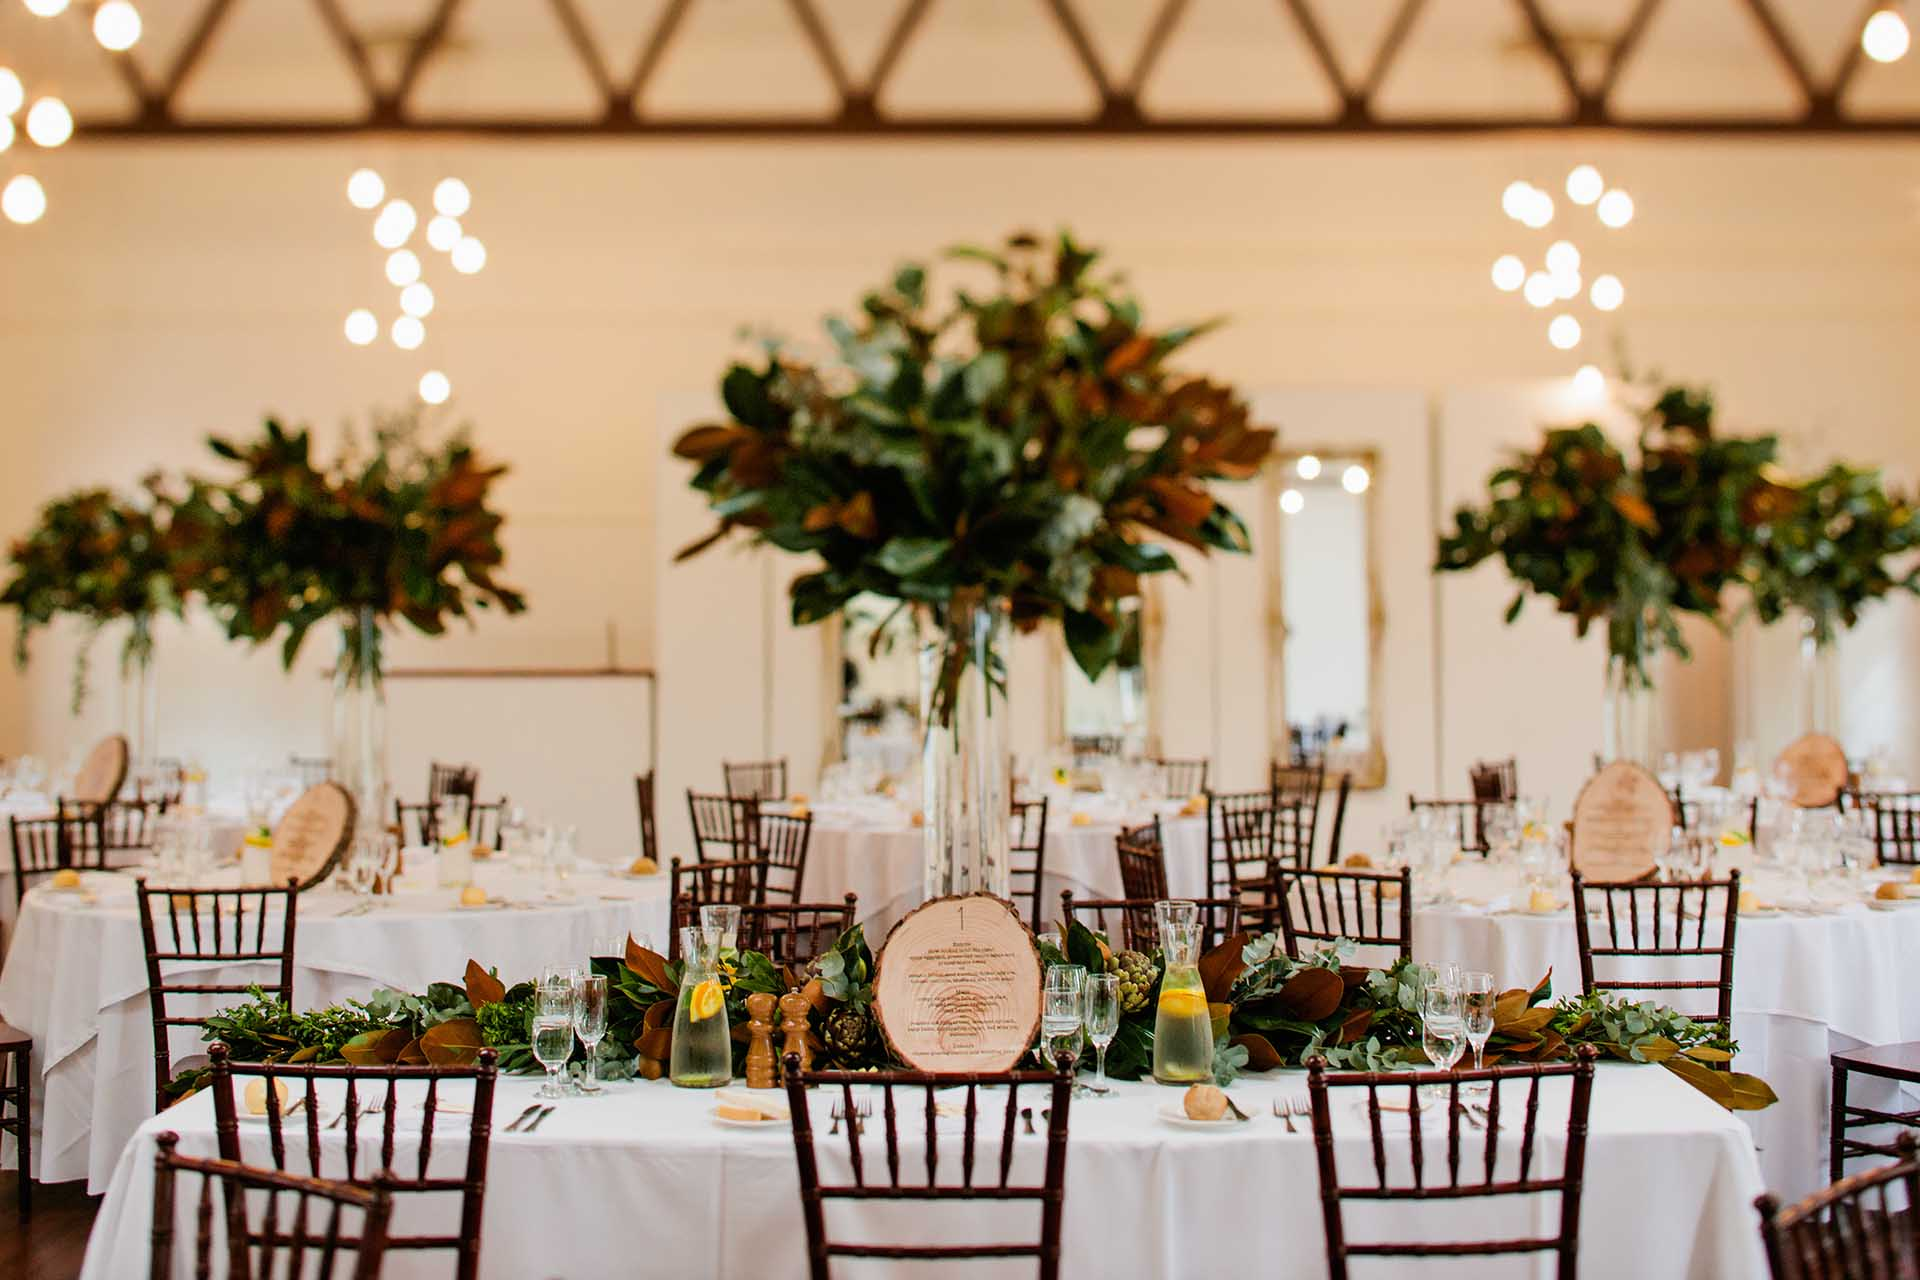 Will and Jac Melbourne wedding planners